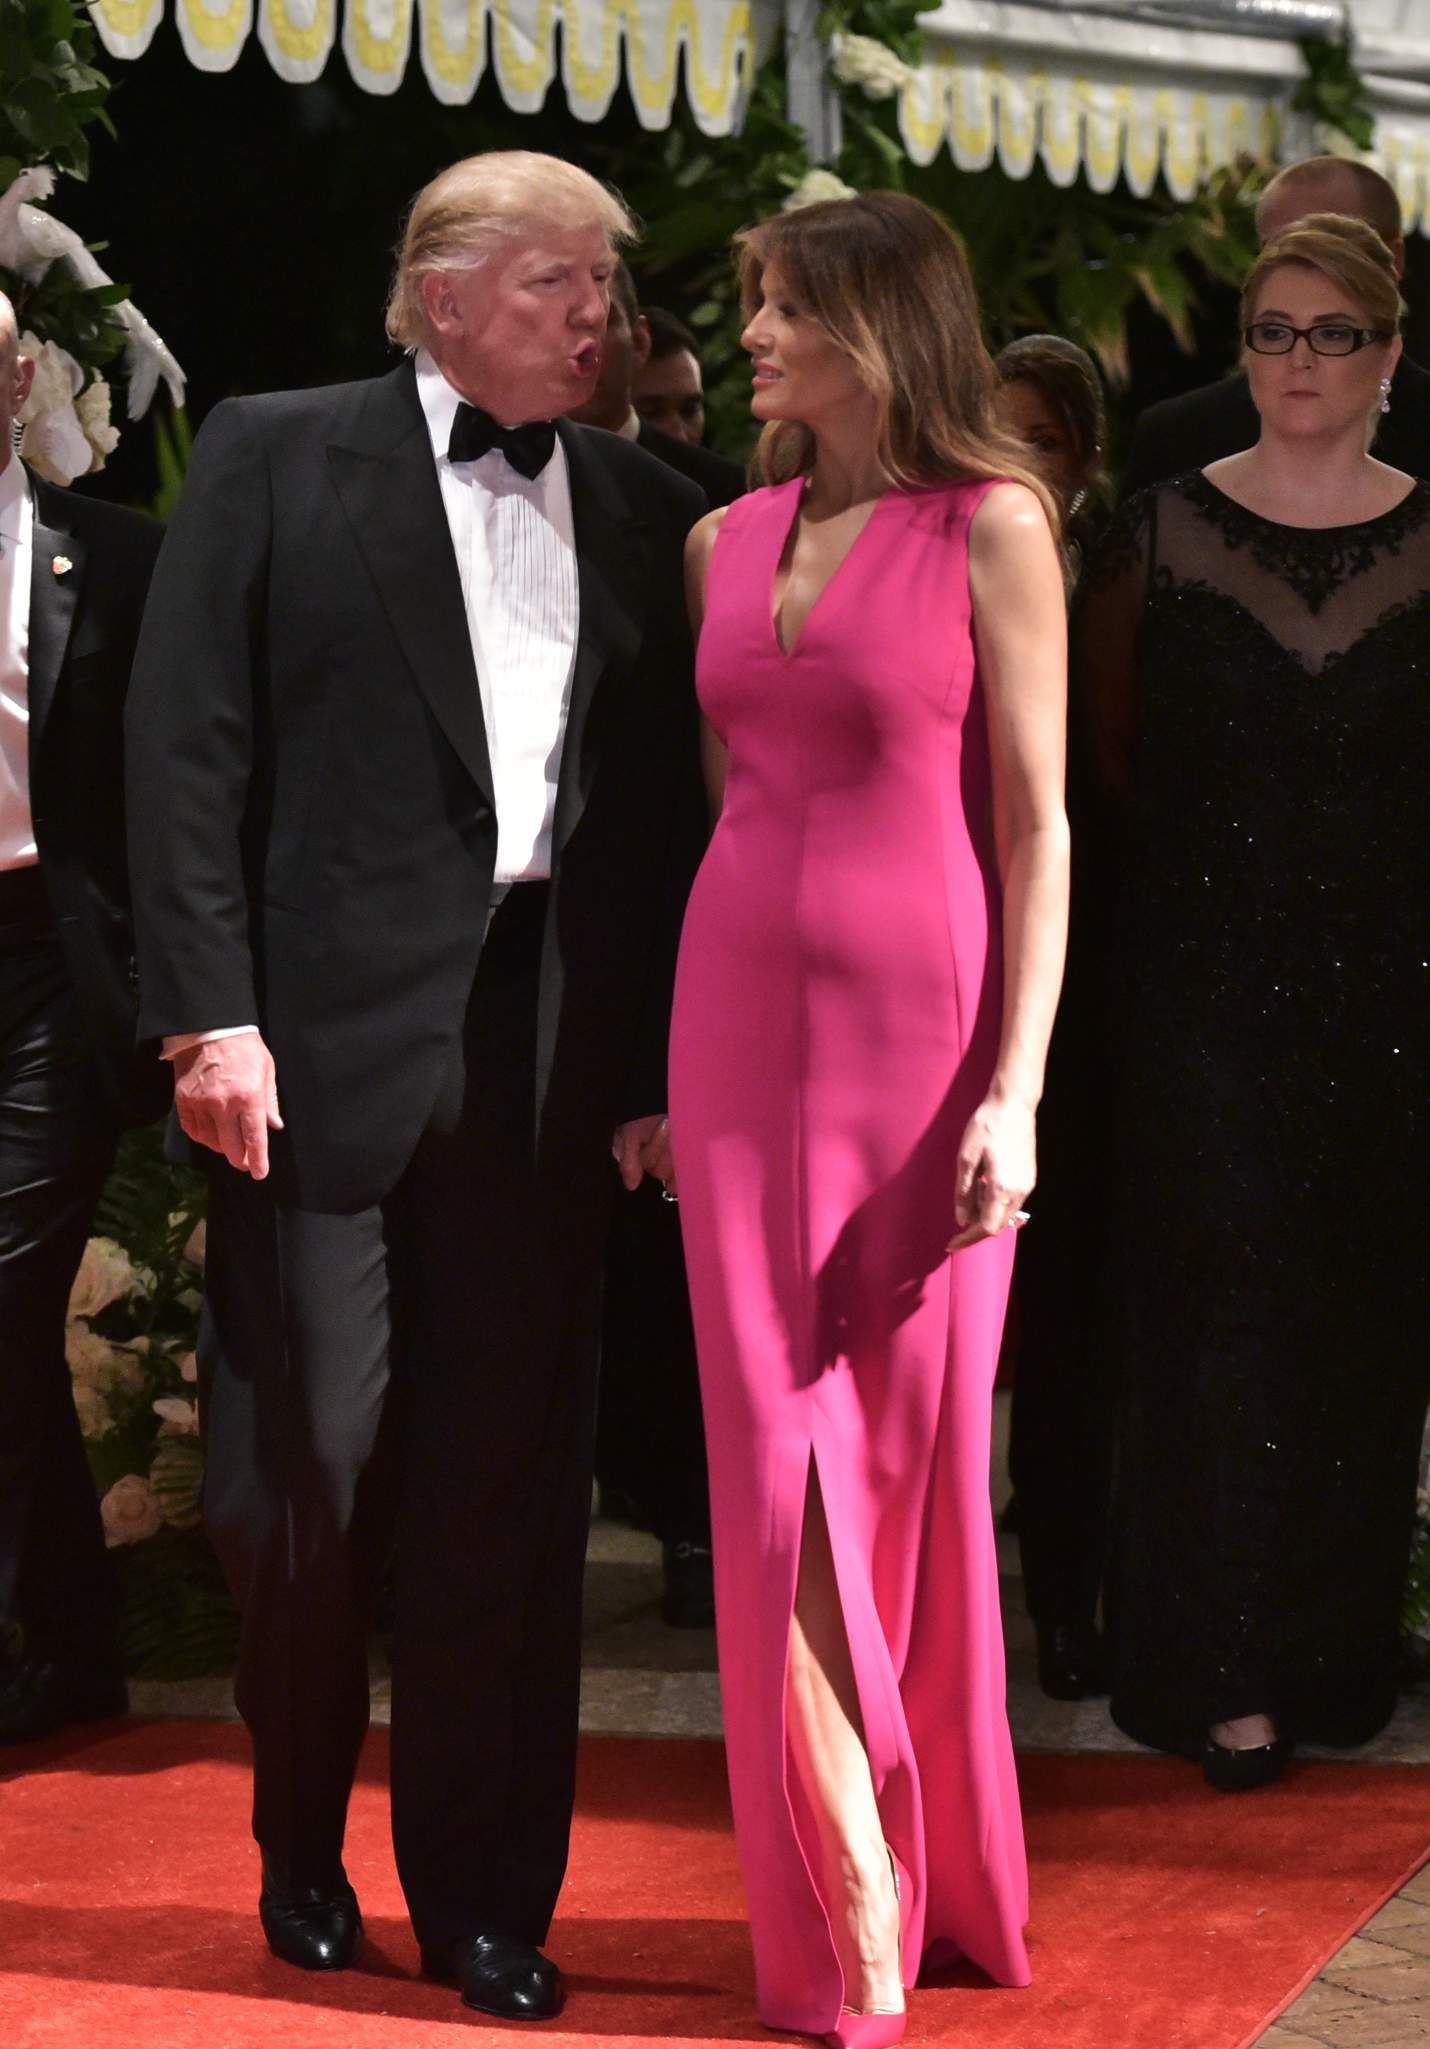 What Would Our First Lady Wear❓